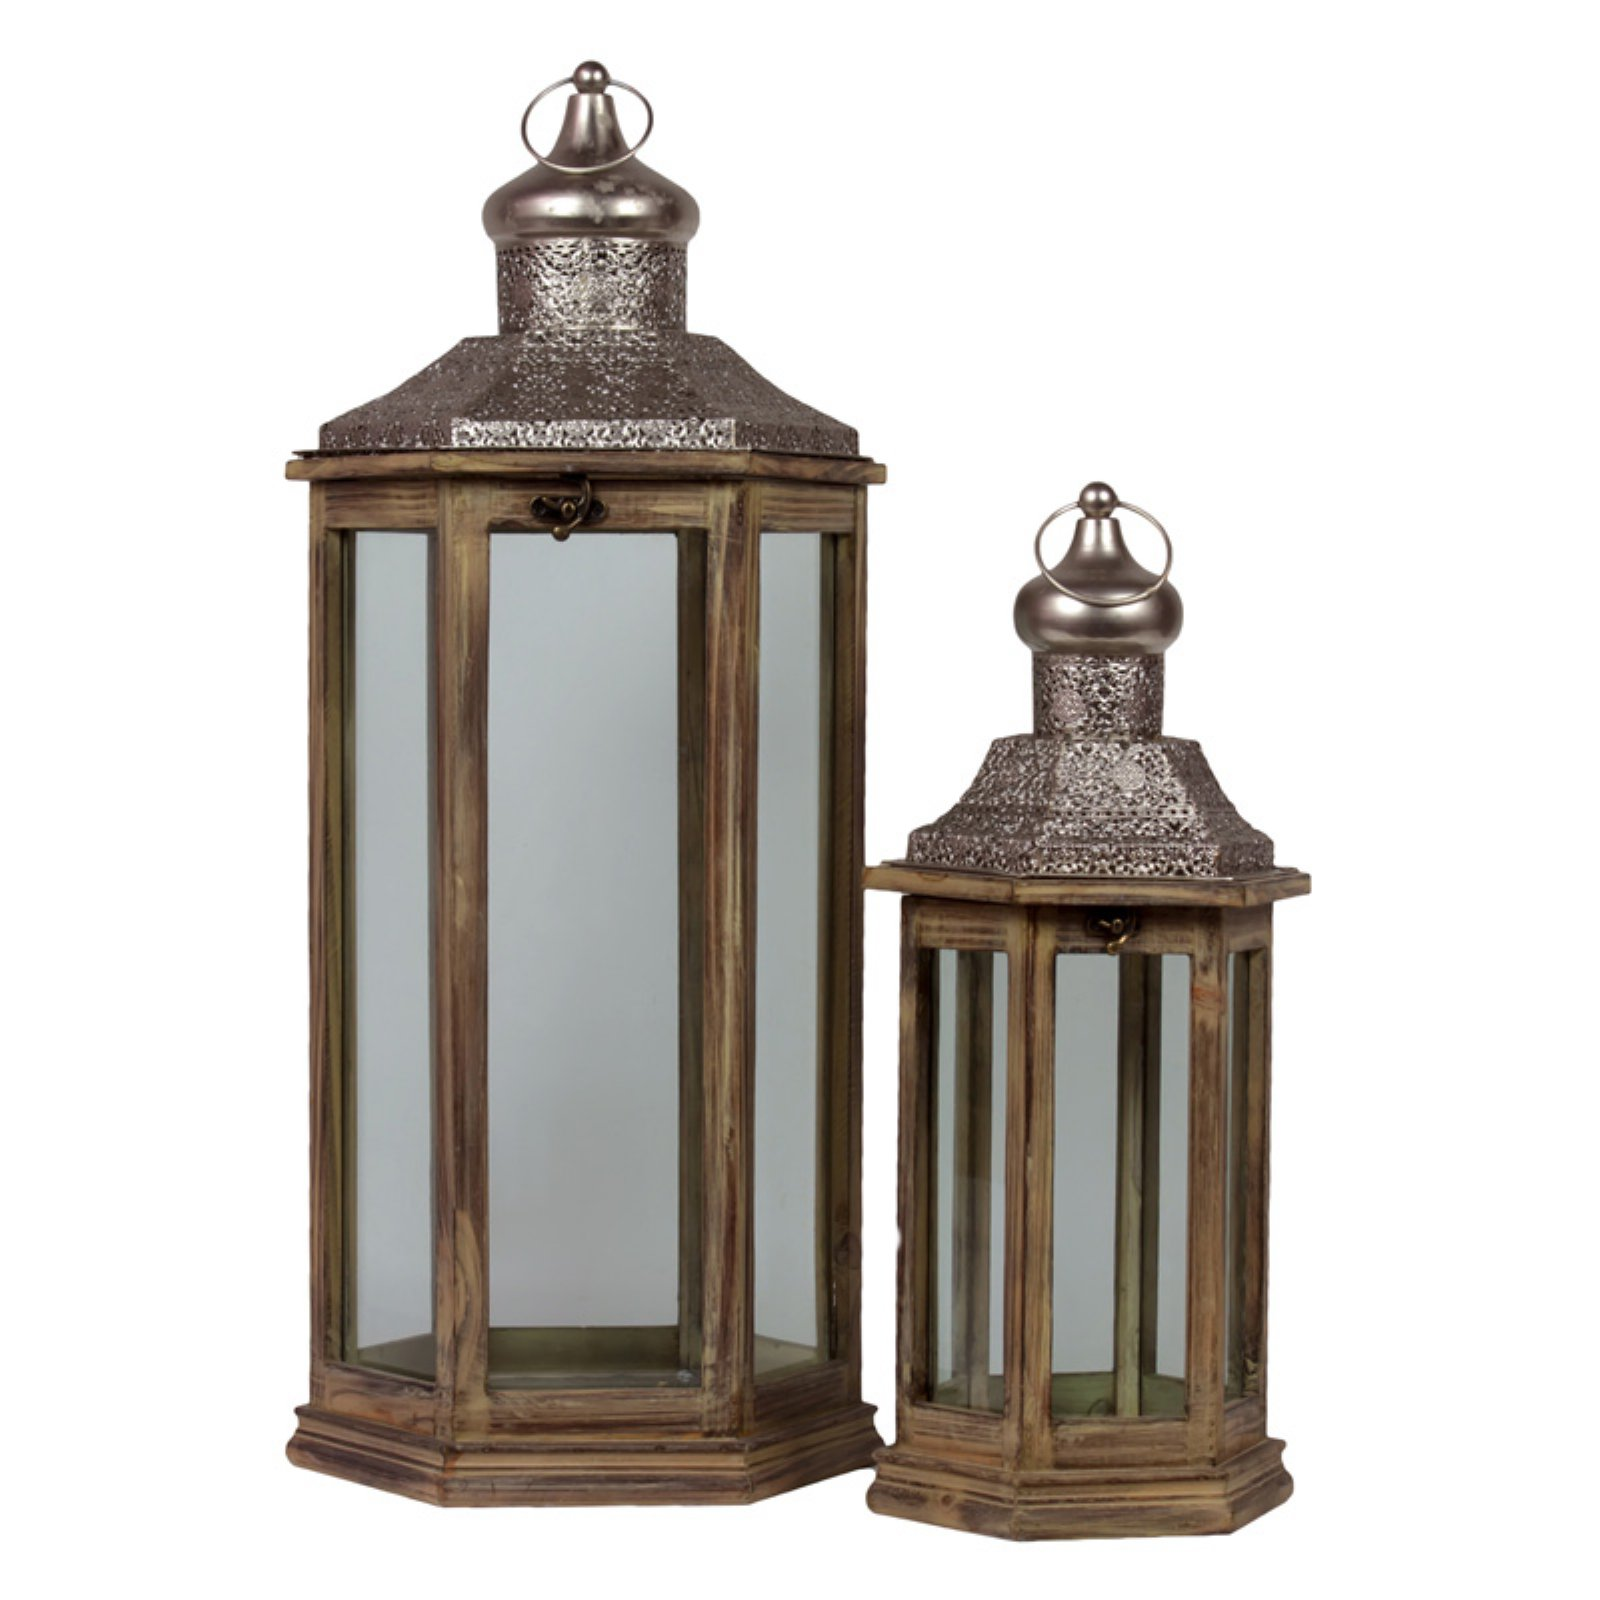 Urban Trends Collection: Wood Hand Lantern, Natural Wood Finish, Brown